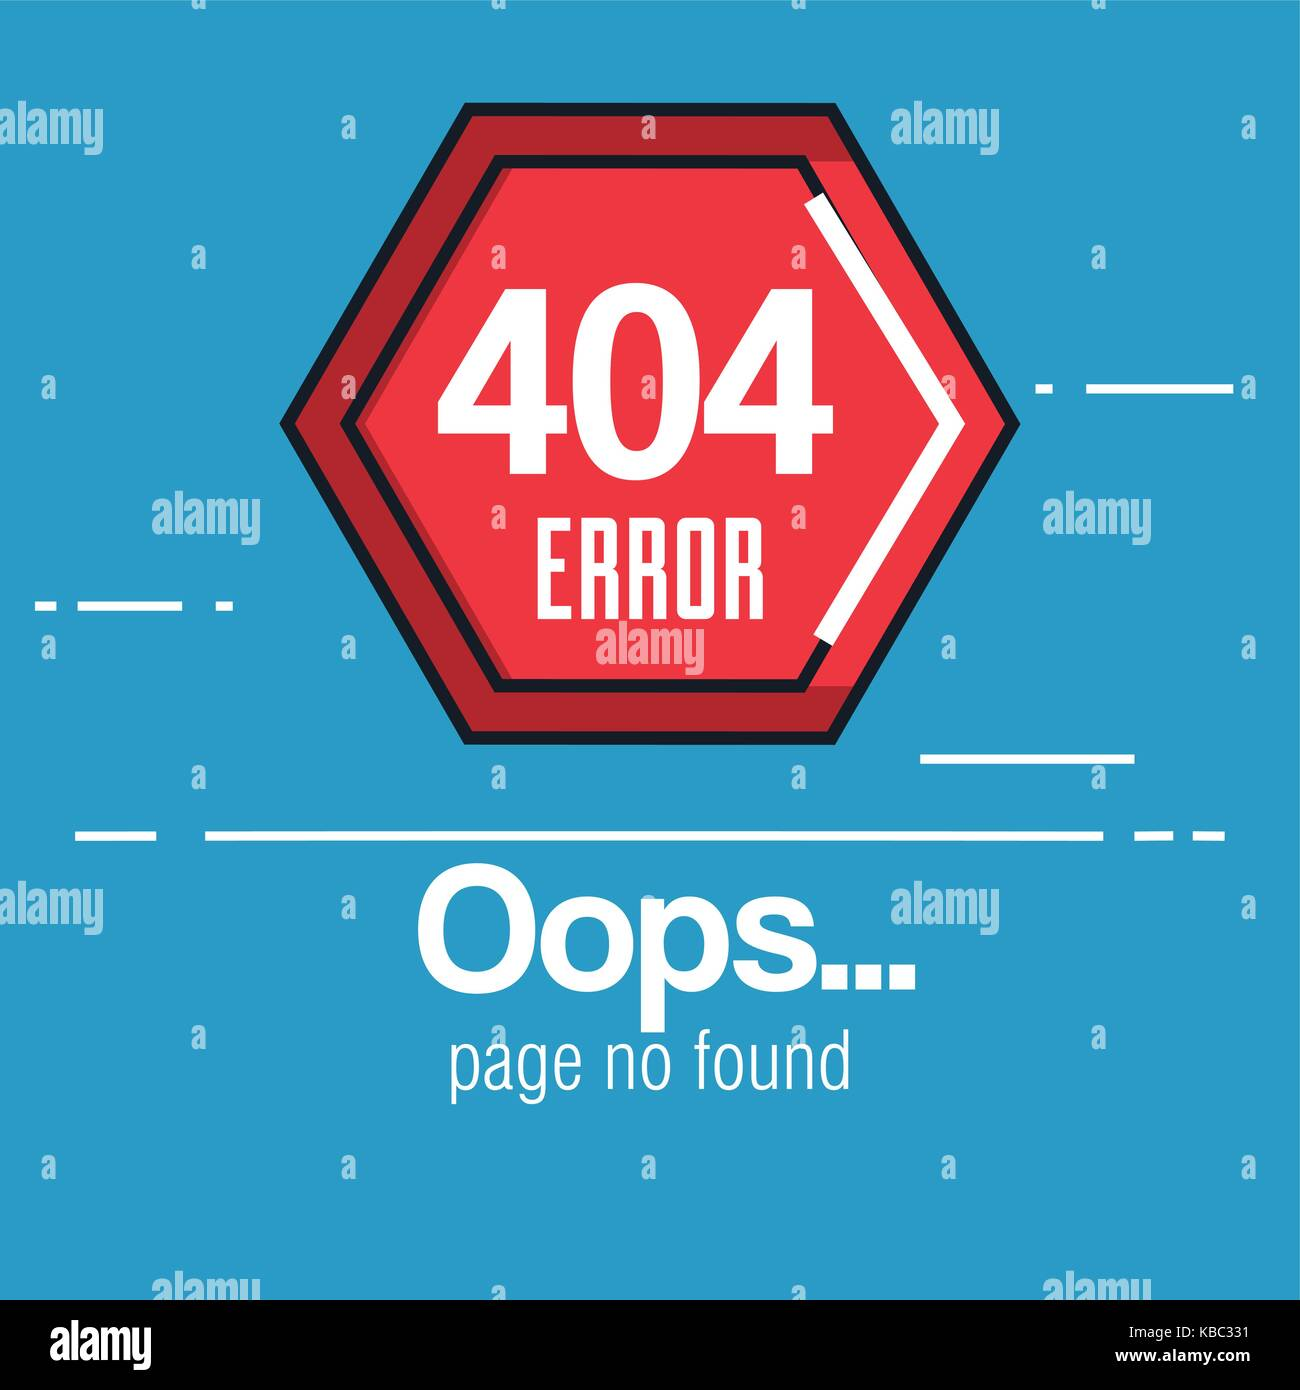 404 connection error icons - Stock Image